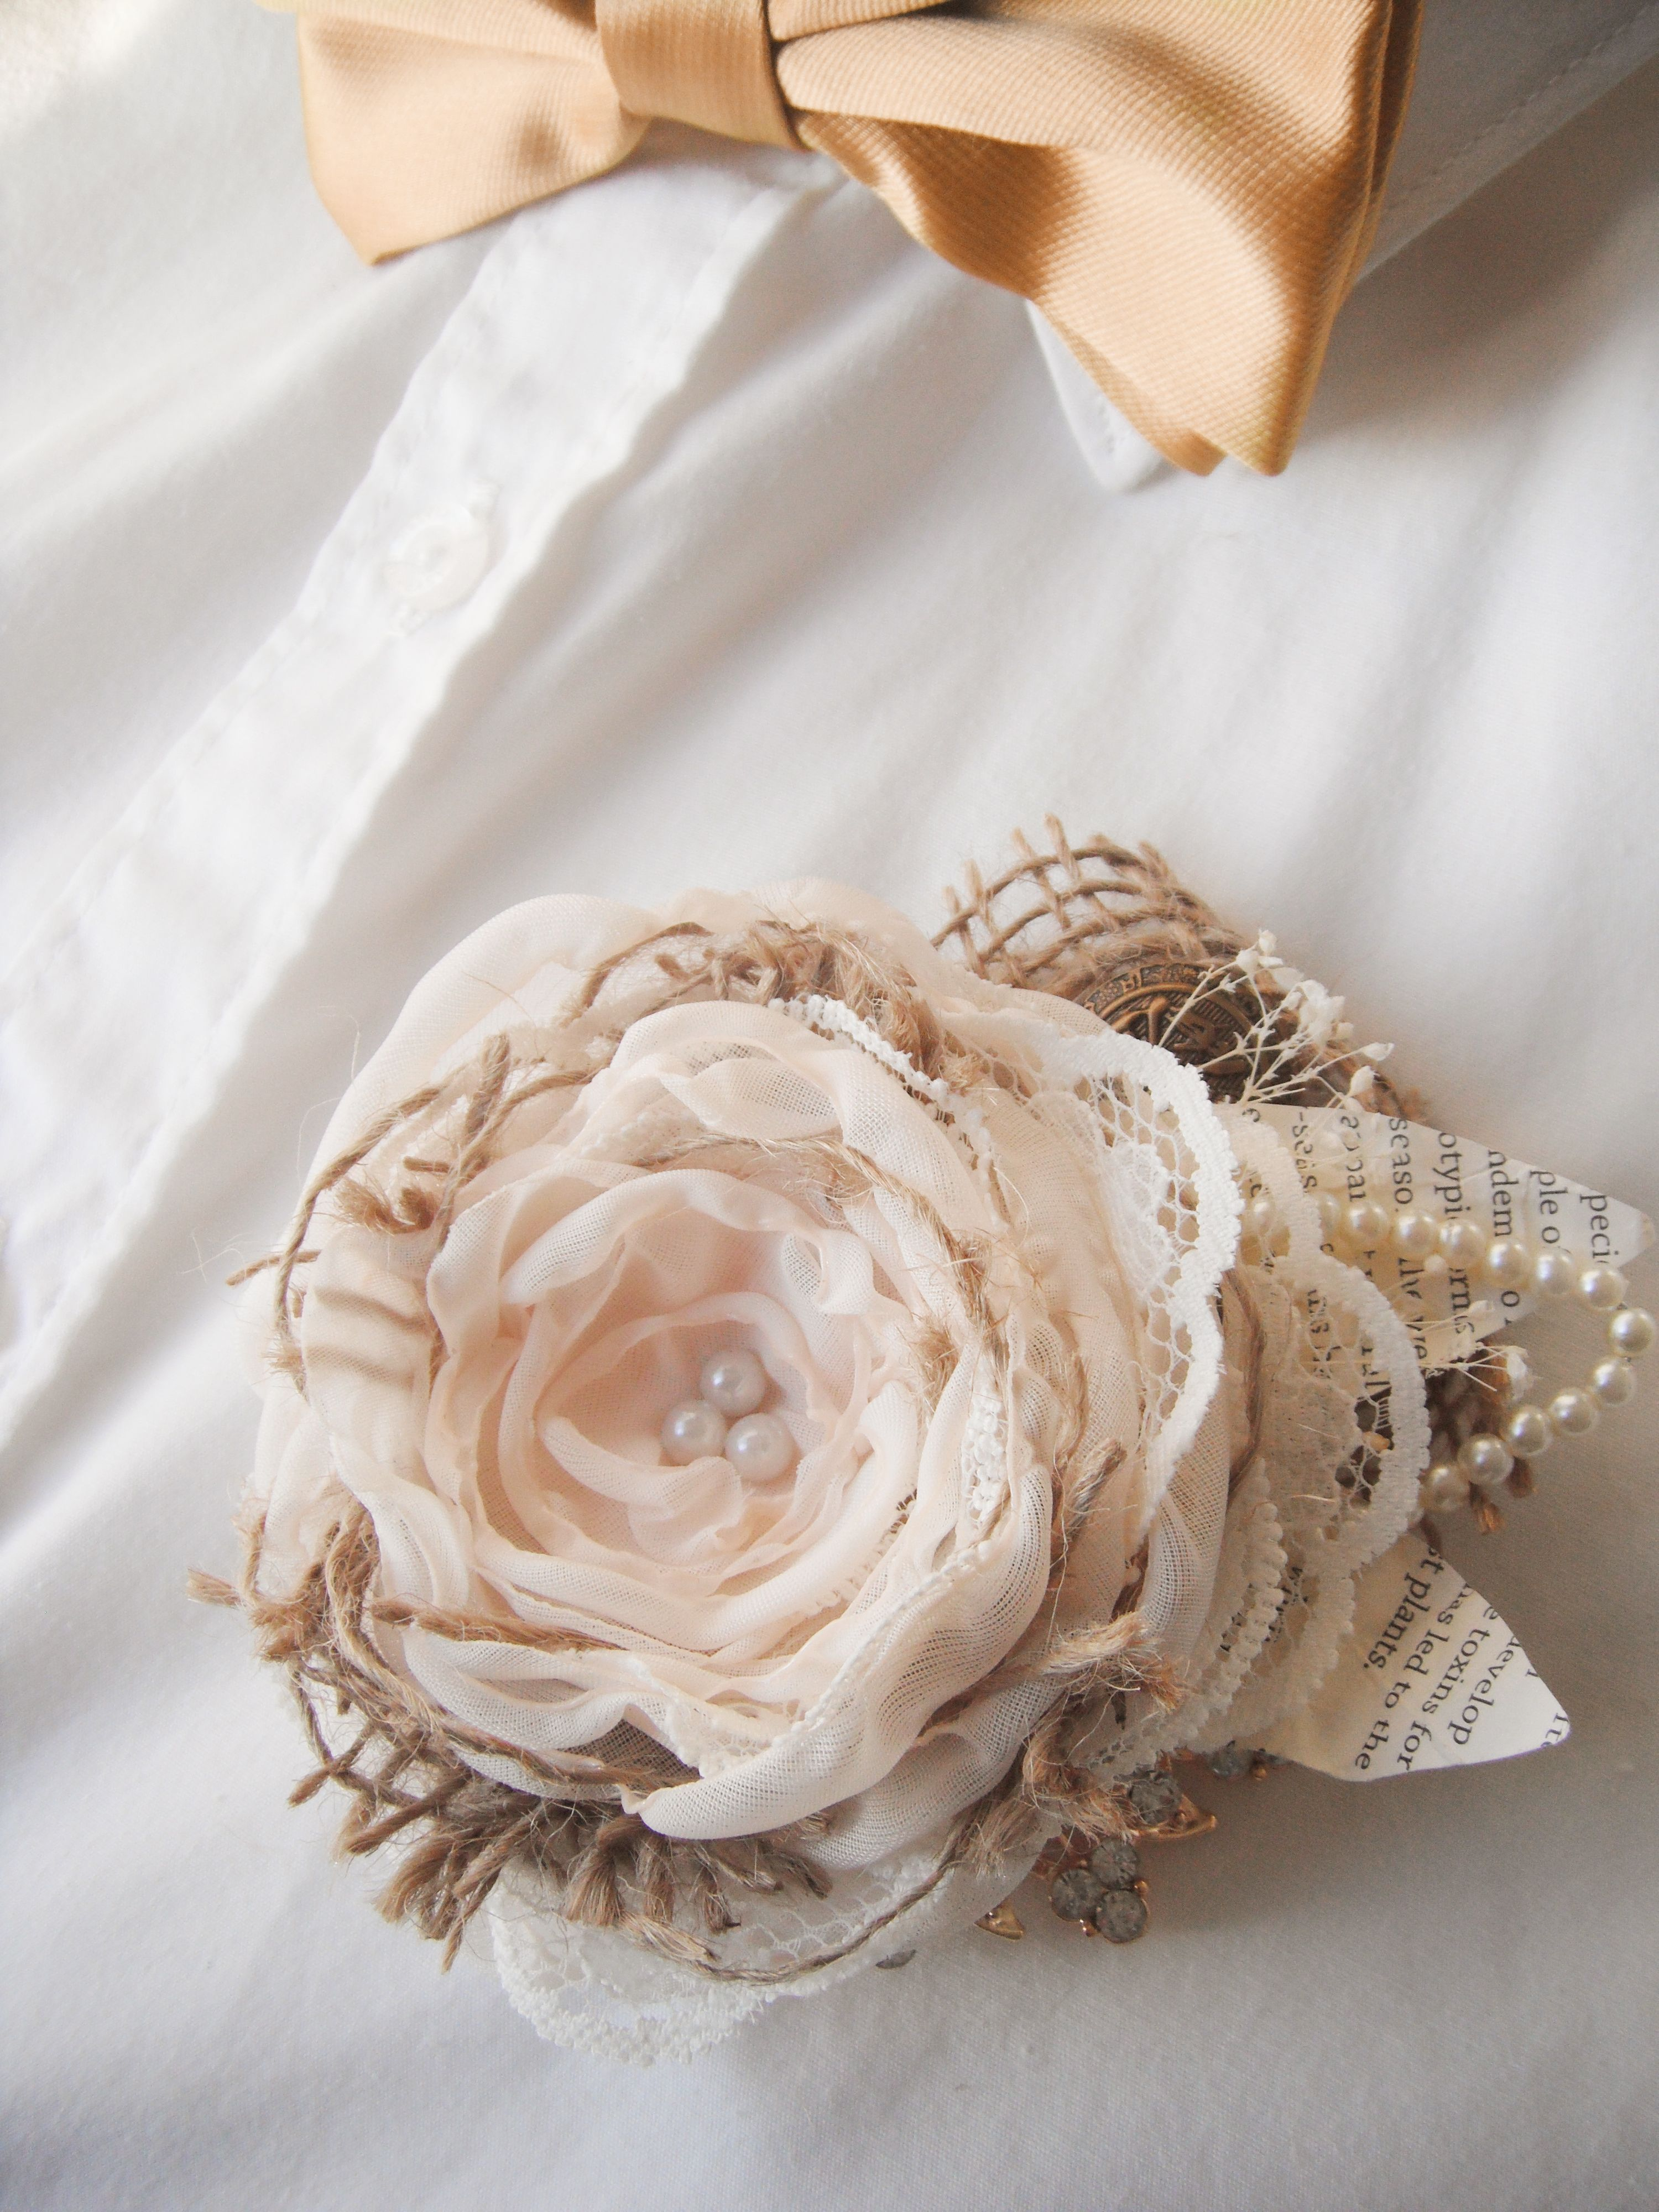 Burlap and lace fabric flower boutonniere by mademoiselle artsy burlap and lace fabric flower boutonniere by mademoiselle artsy izmirmasajfo